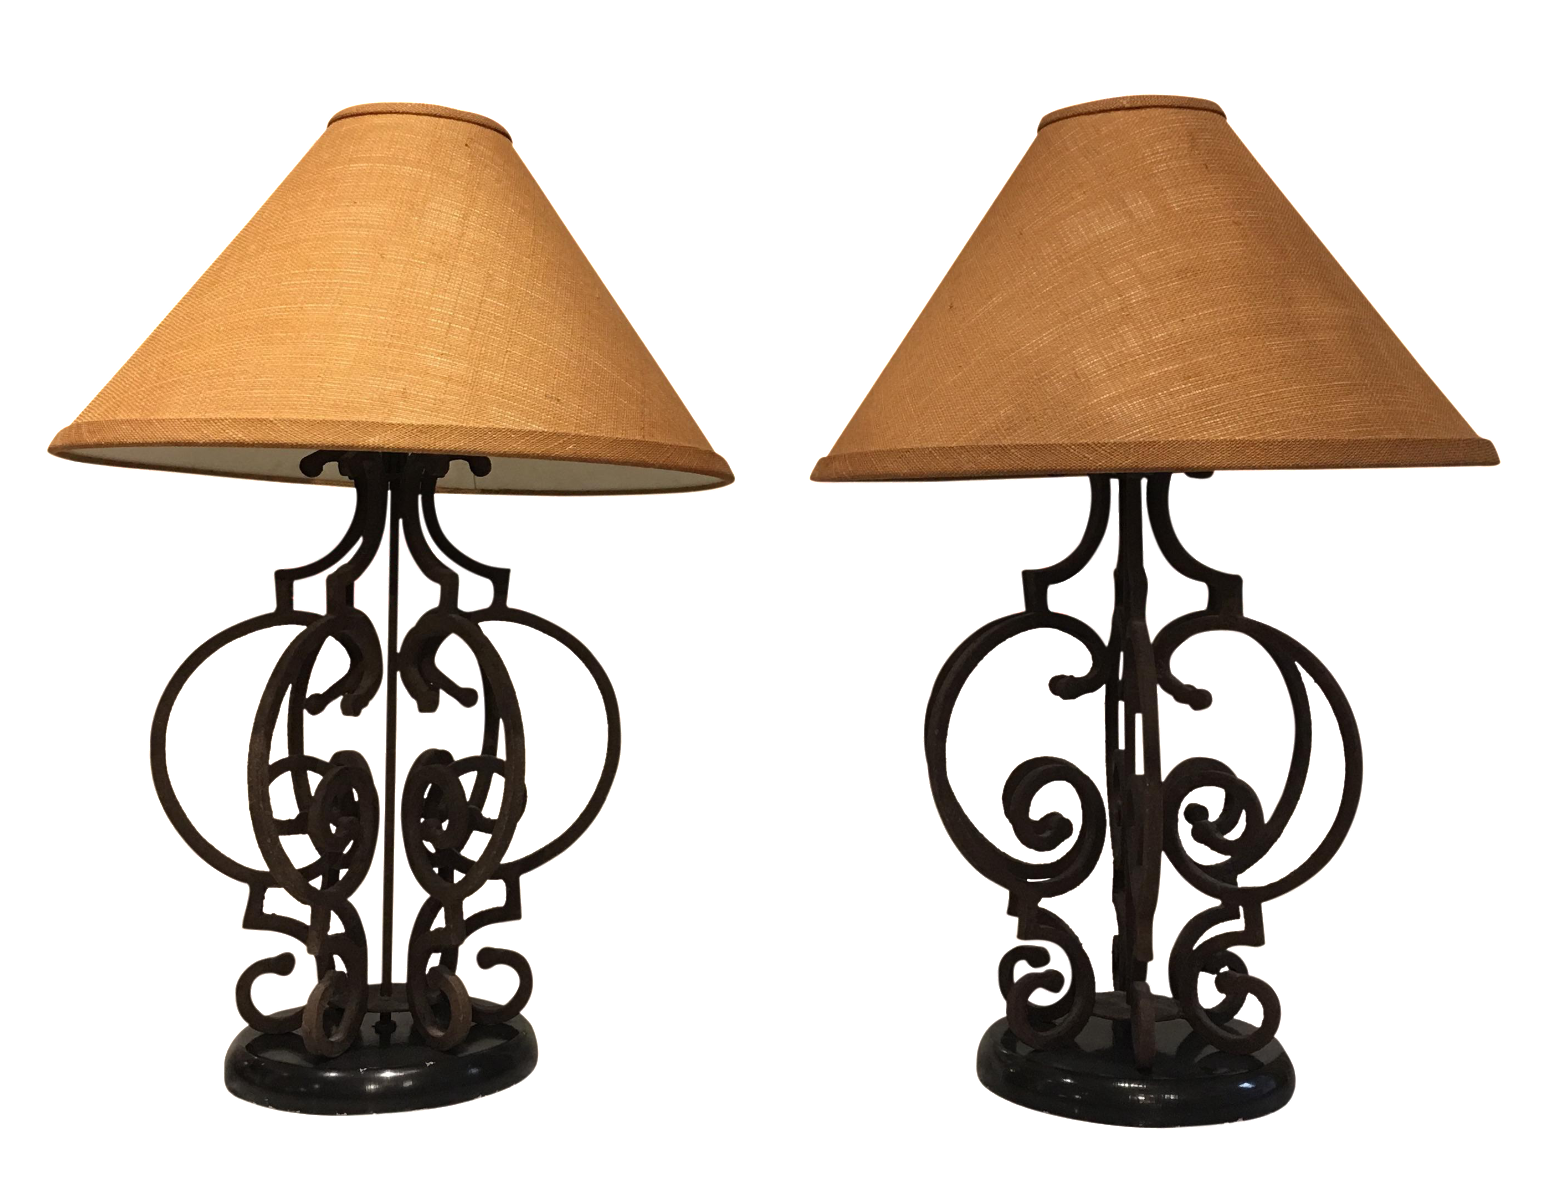 Wonderful Ornate Rustic Wrought Iron Table Lamps   A Pair   Image 1 Of 5